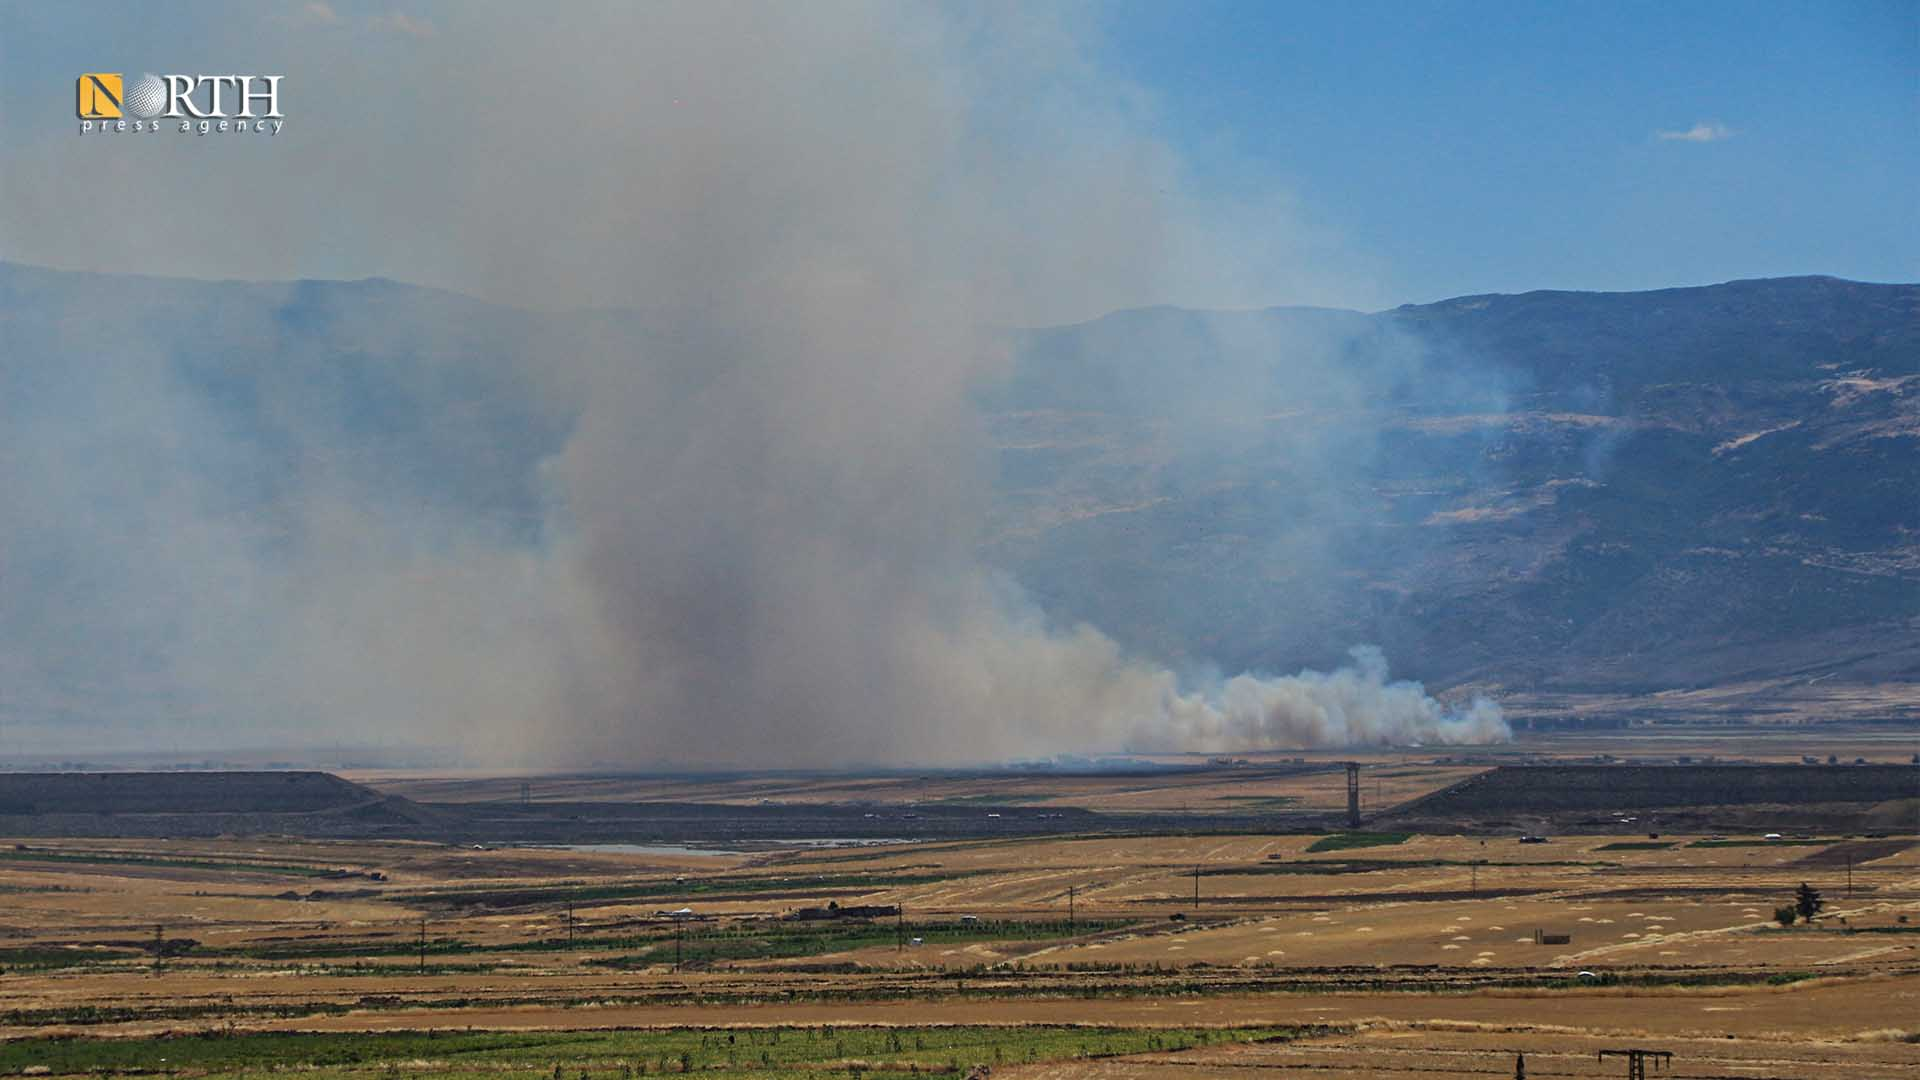 Fires broke out west of Hama due to artillery shelling – North Press/archive